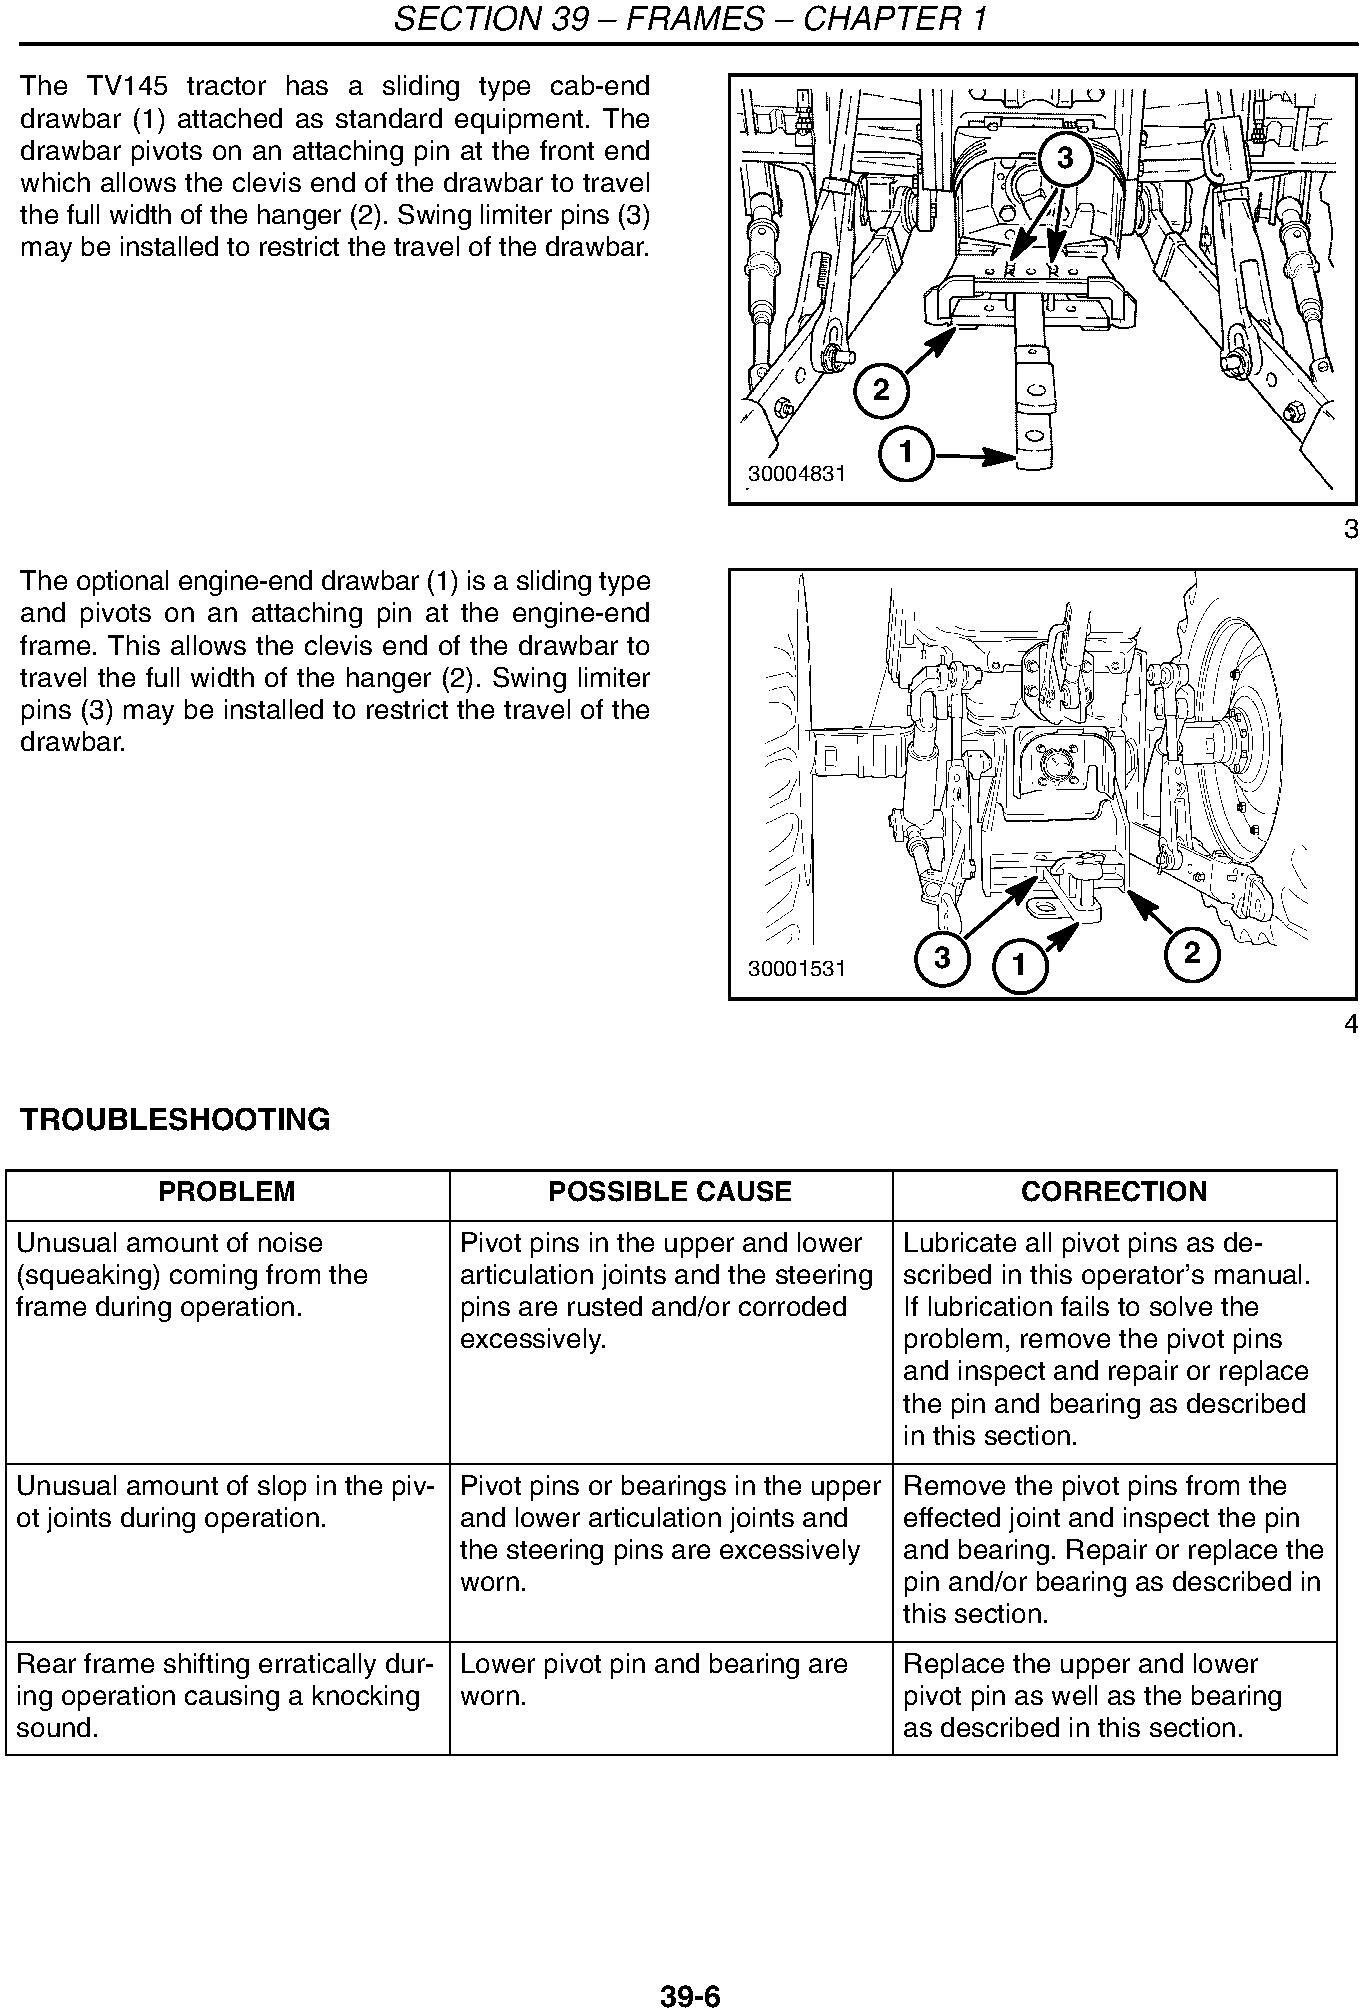 New Holland TV145 Tractor Complete Service Manual - 2